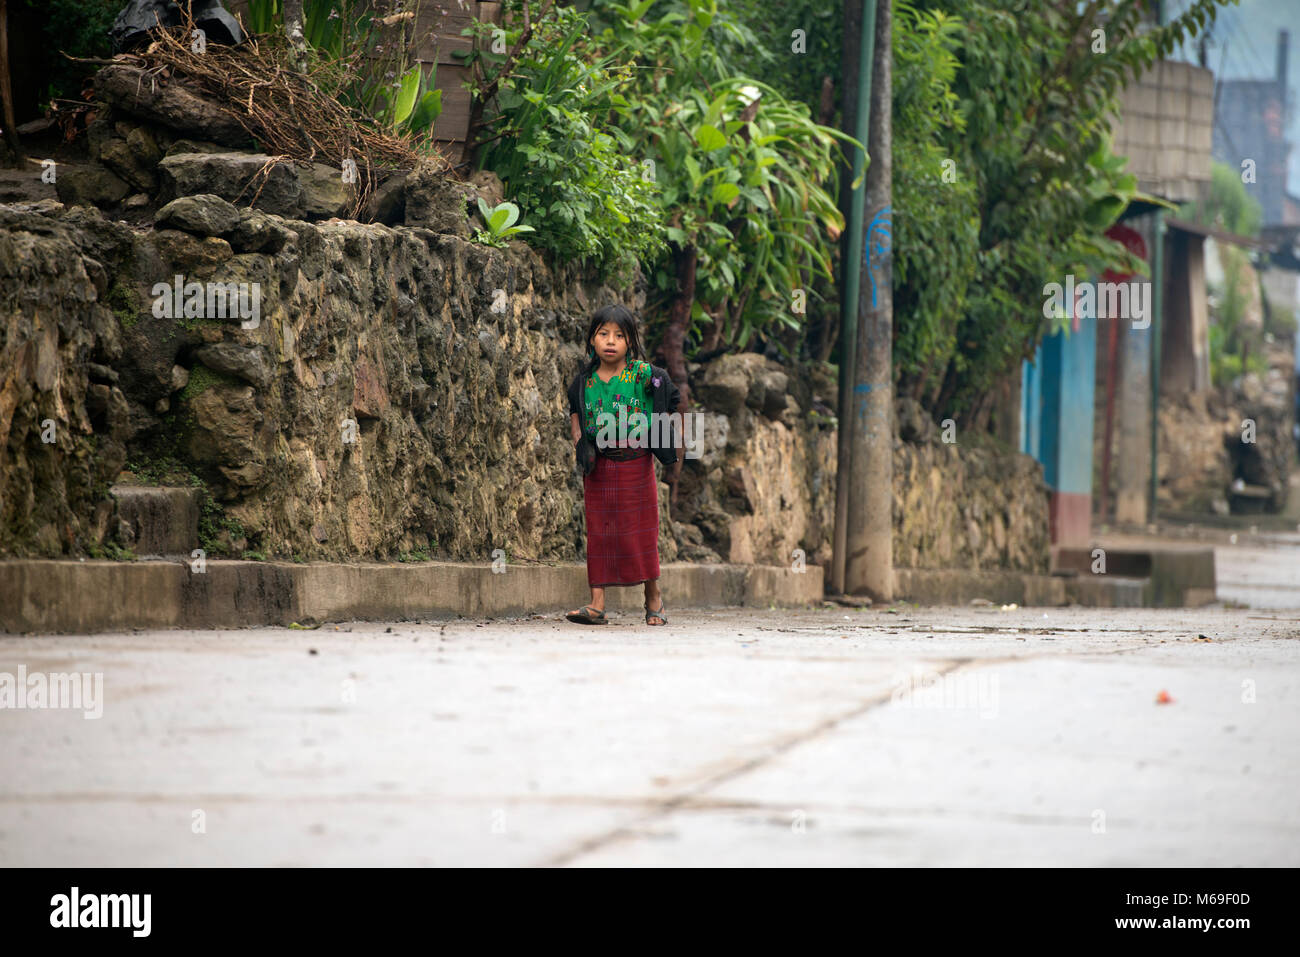 A young, indigenous Ixil Maya girl in traditional dress walking along the street in the rain in San Gaspar Chajul, - Stock Image